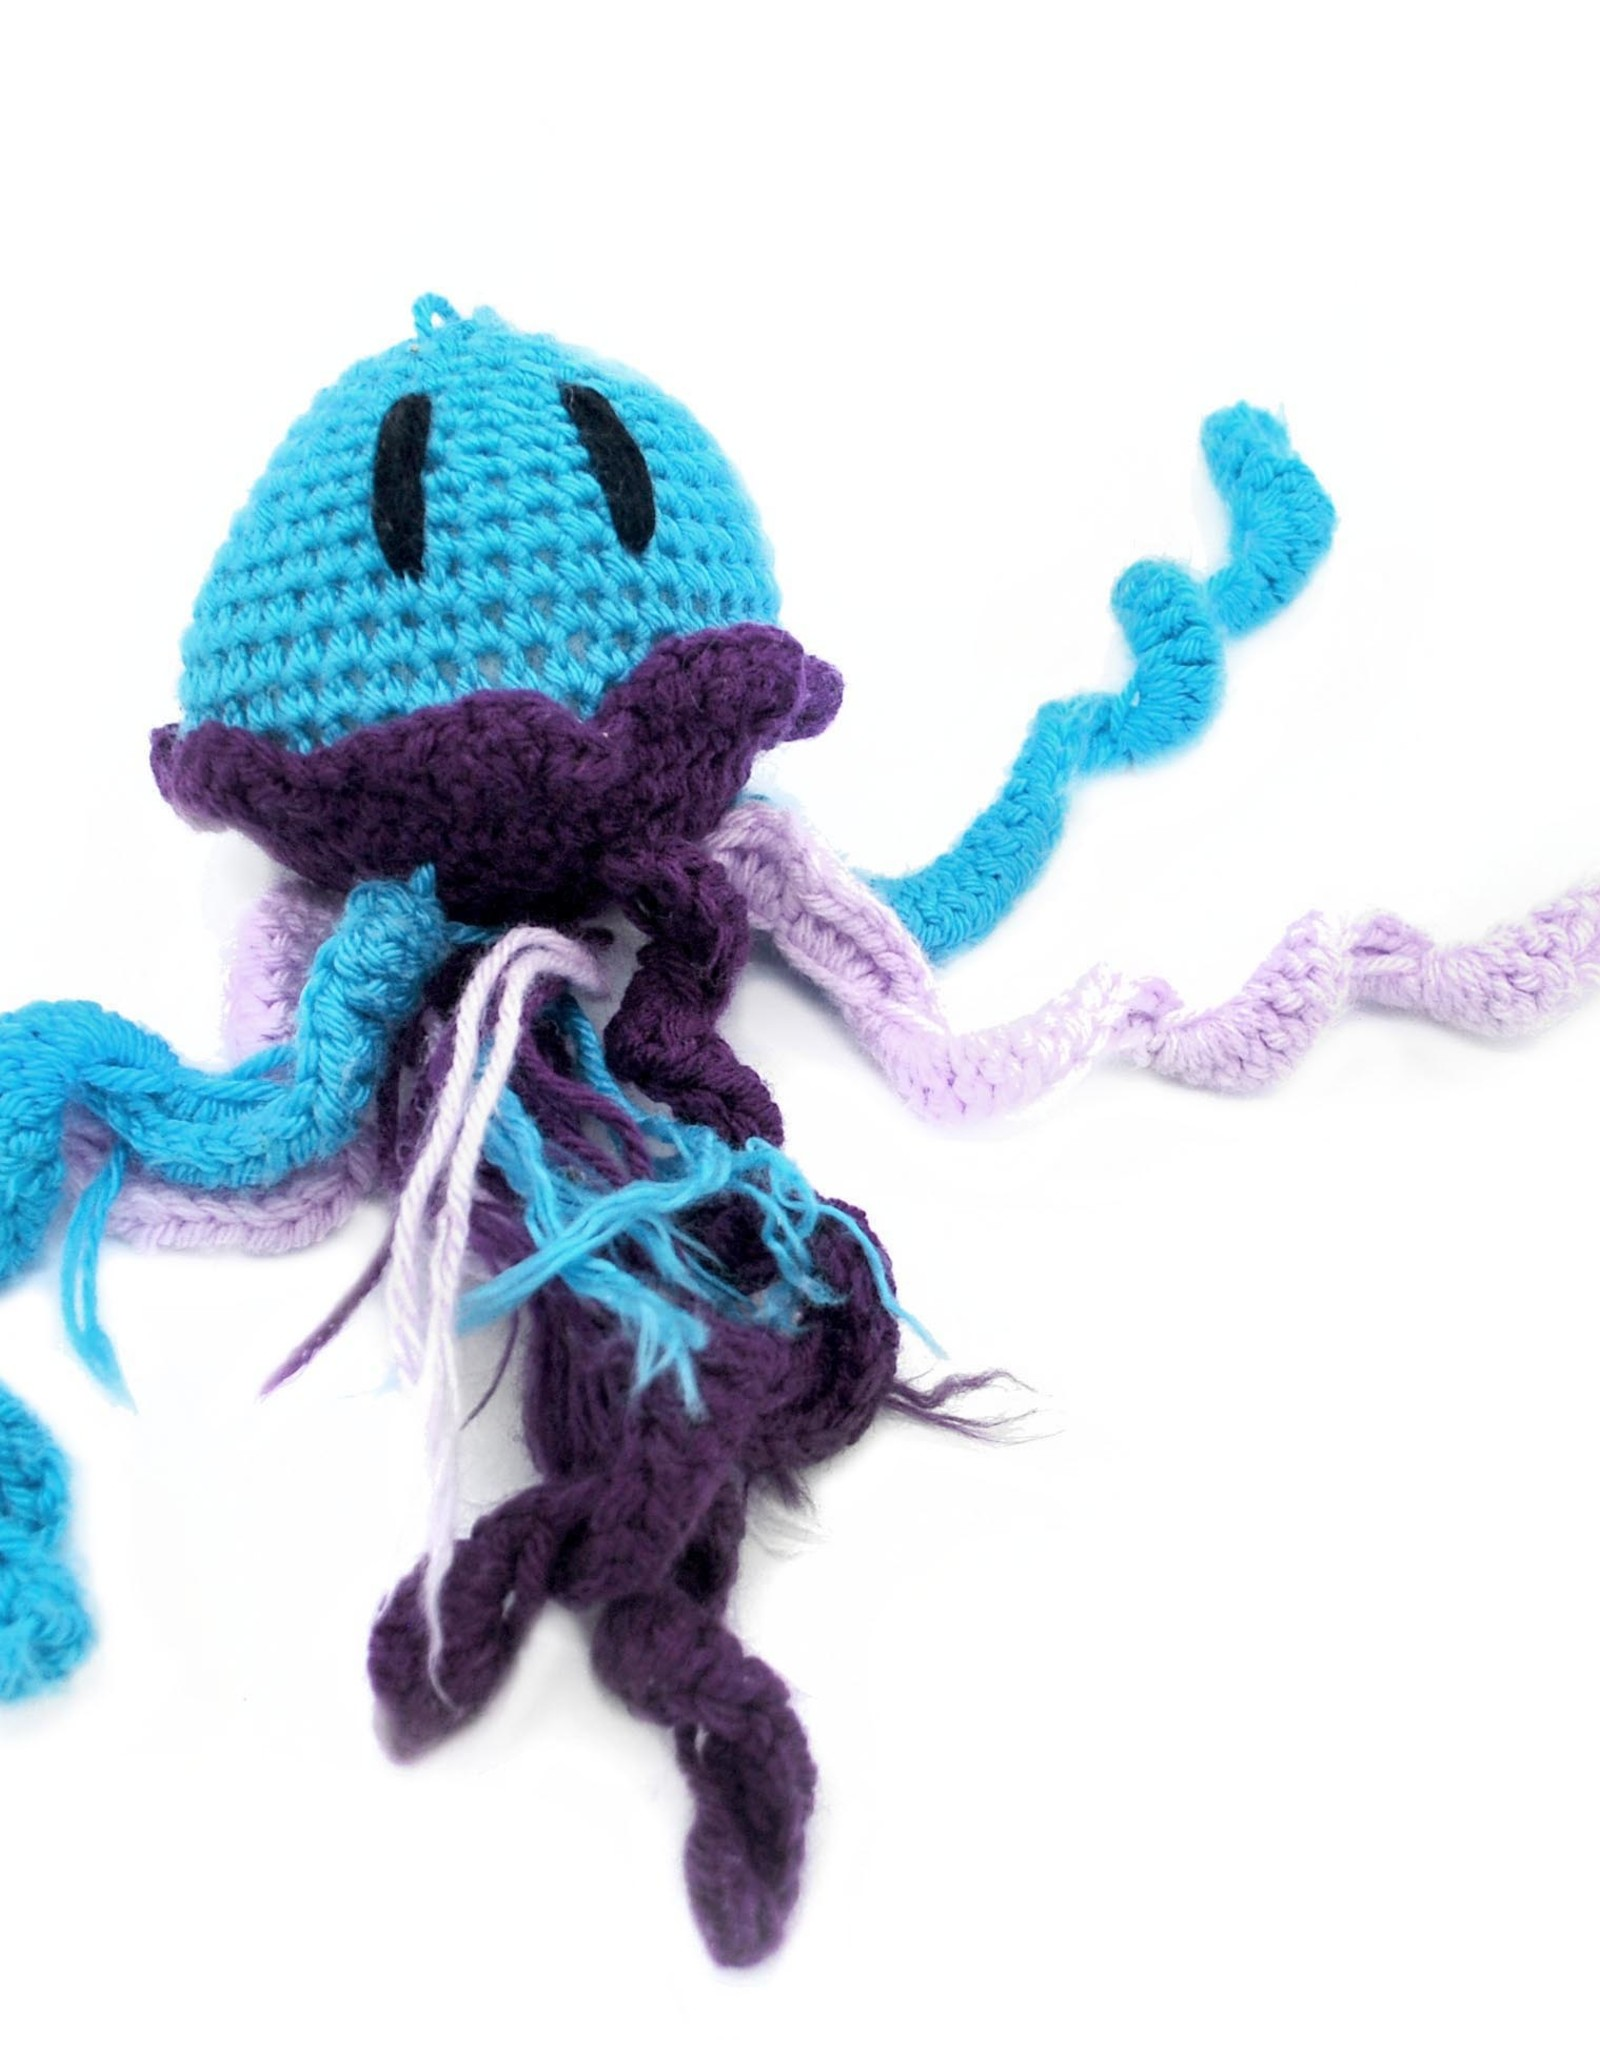 Haley Slamon Aqua and Purple Plush Jellyfish by Haley Slamon